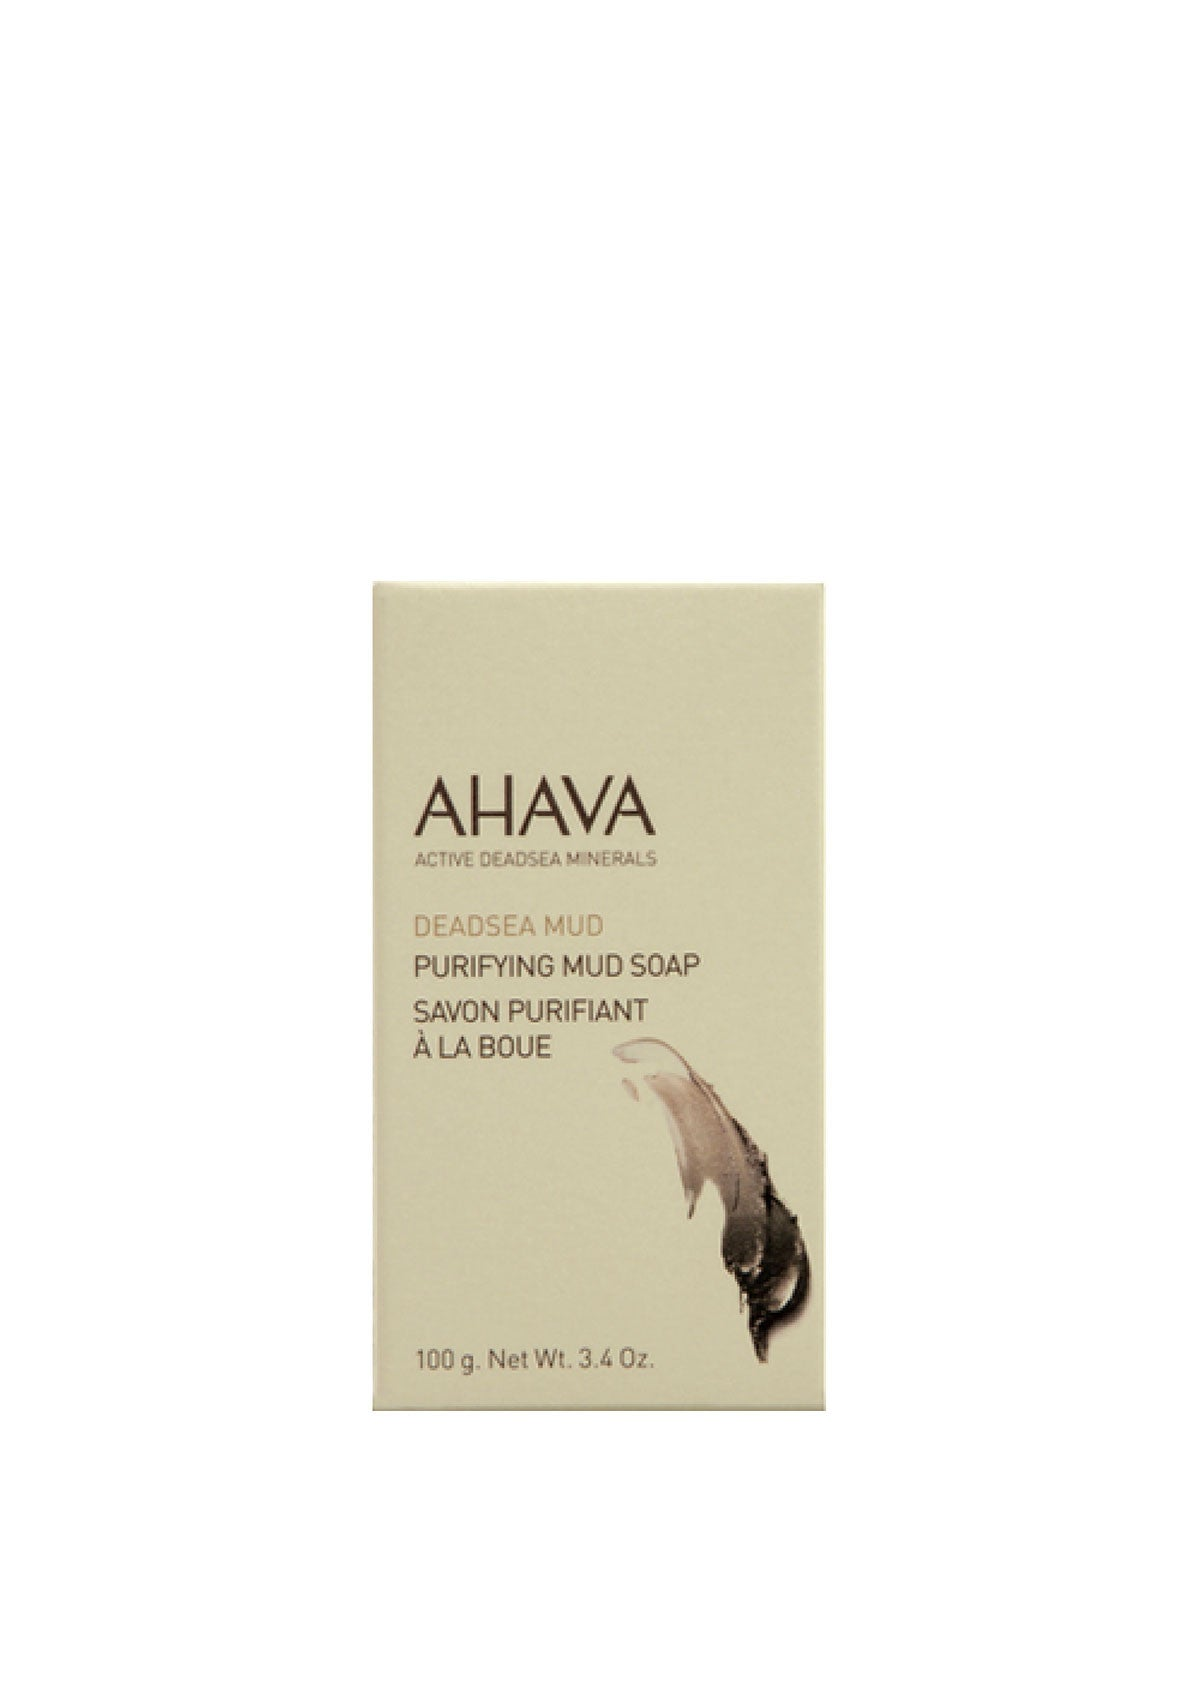 AHAVA - Purifying Dead Sea Mud Soap - DeadSeaShop.co.uk